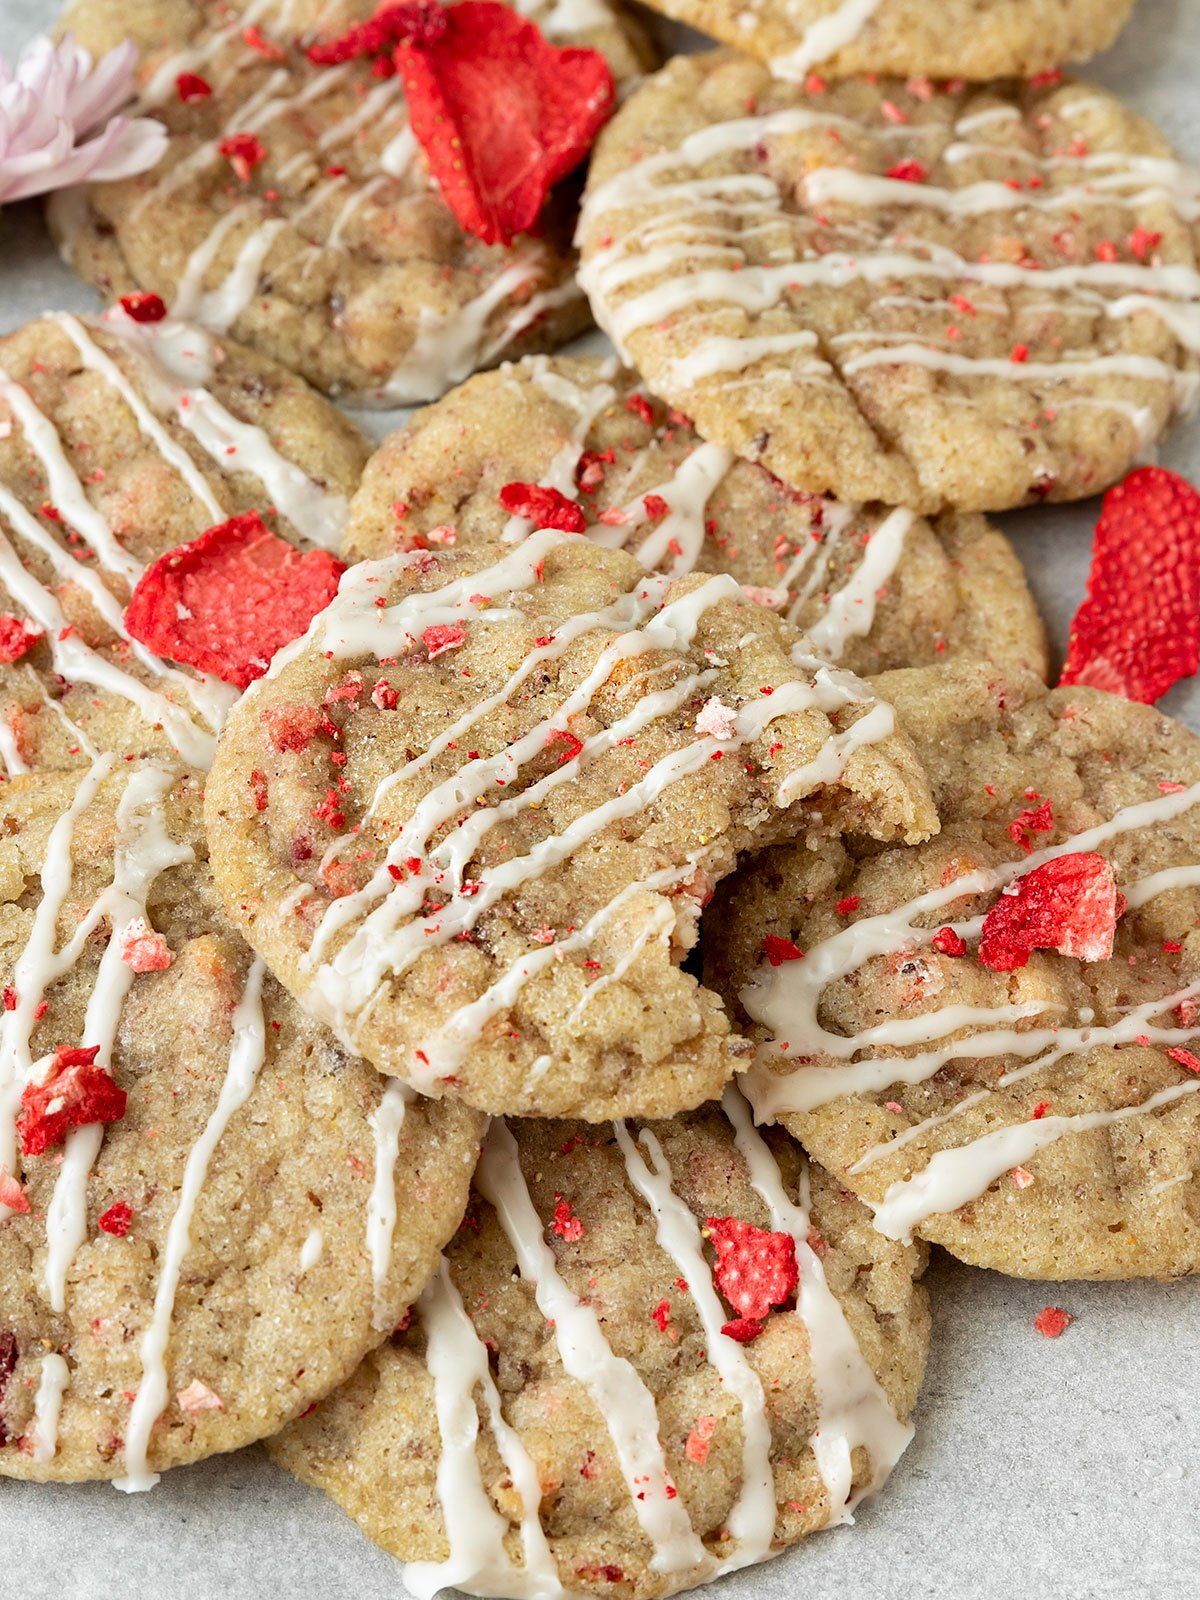 pile of strawberry cookies with vanilla glaze and dried strawberries with top cookie missing a bite